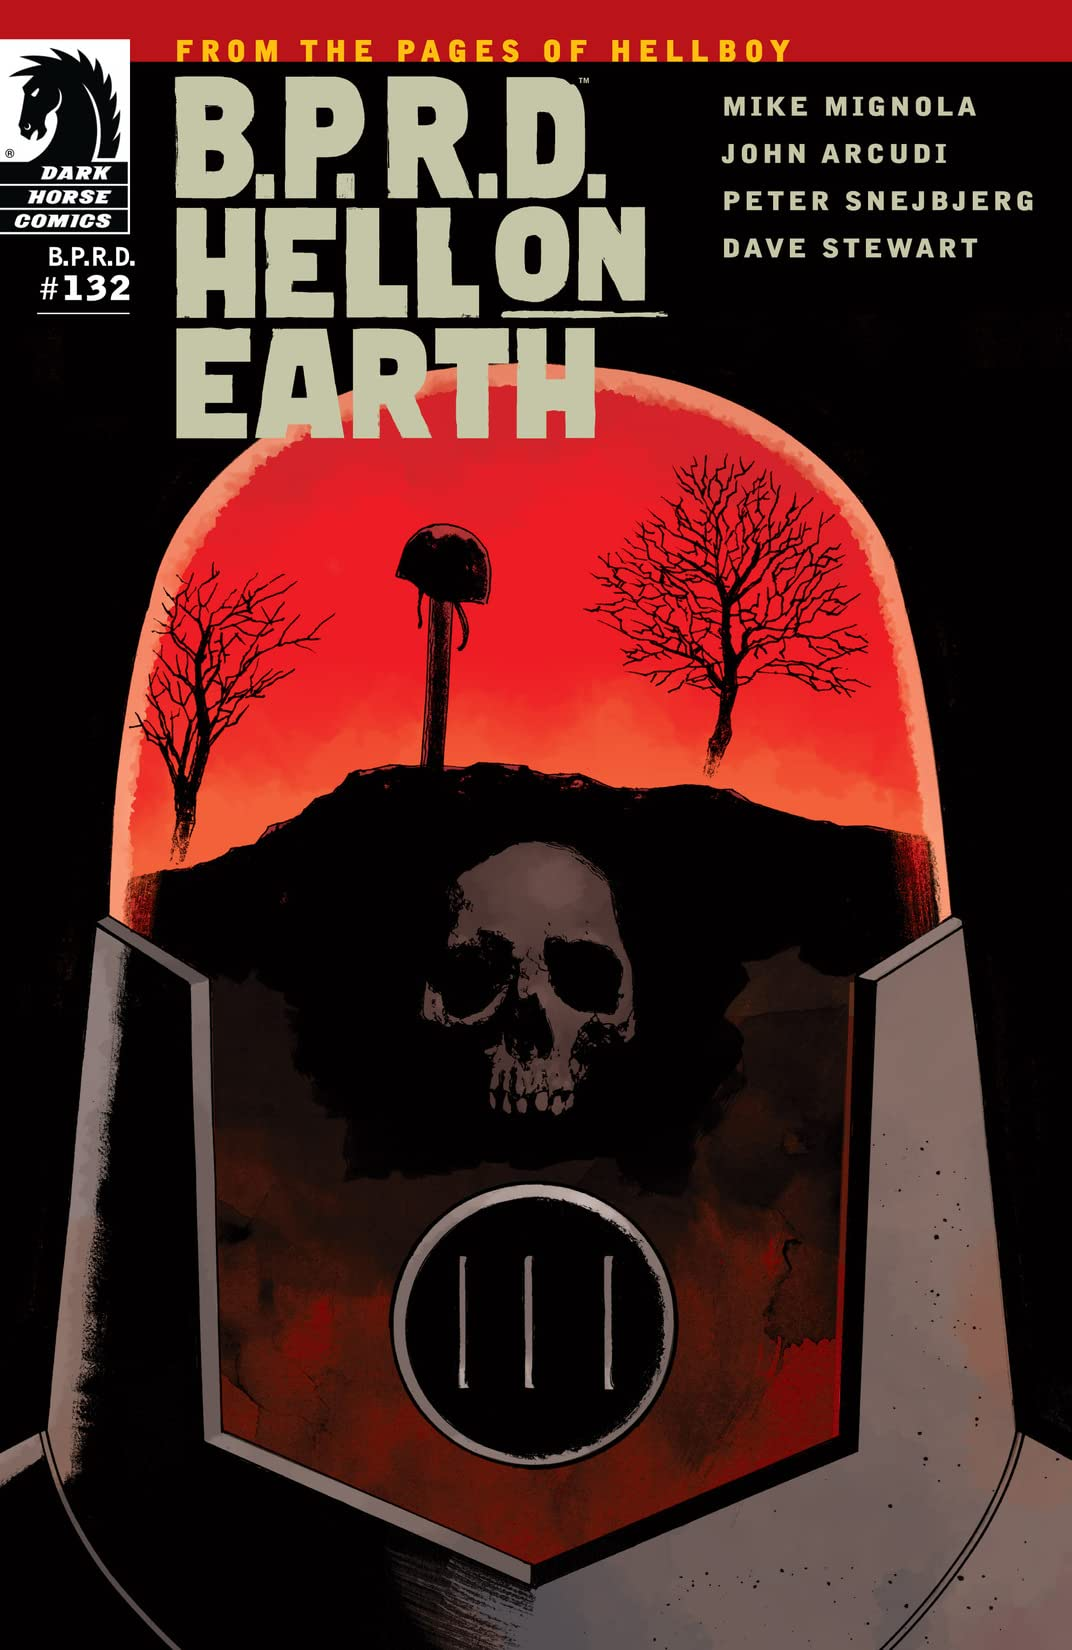 B.P.R.D. Hell on Earth #132